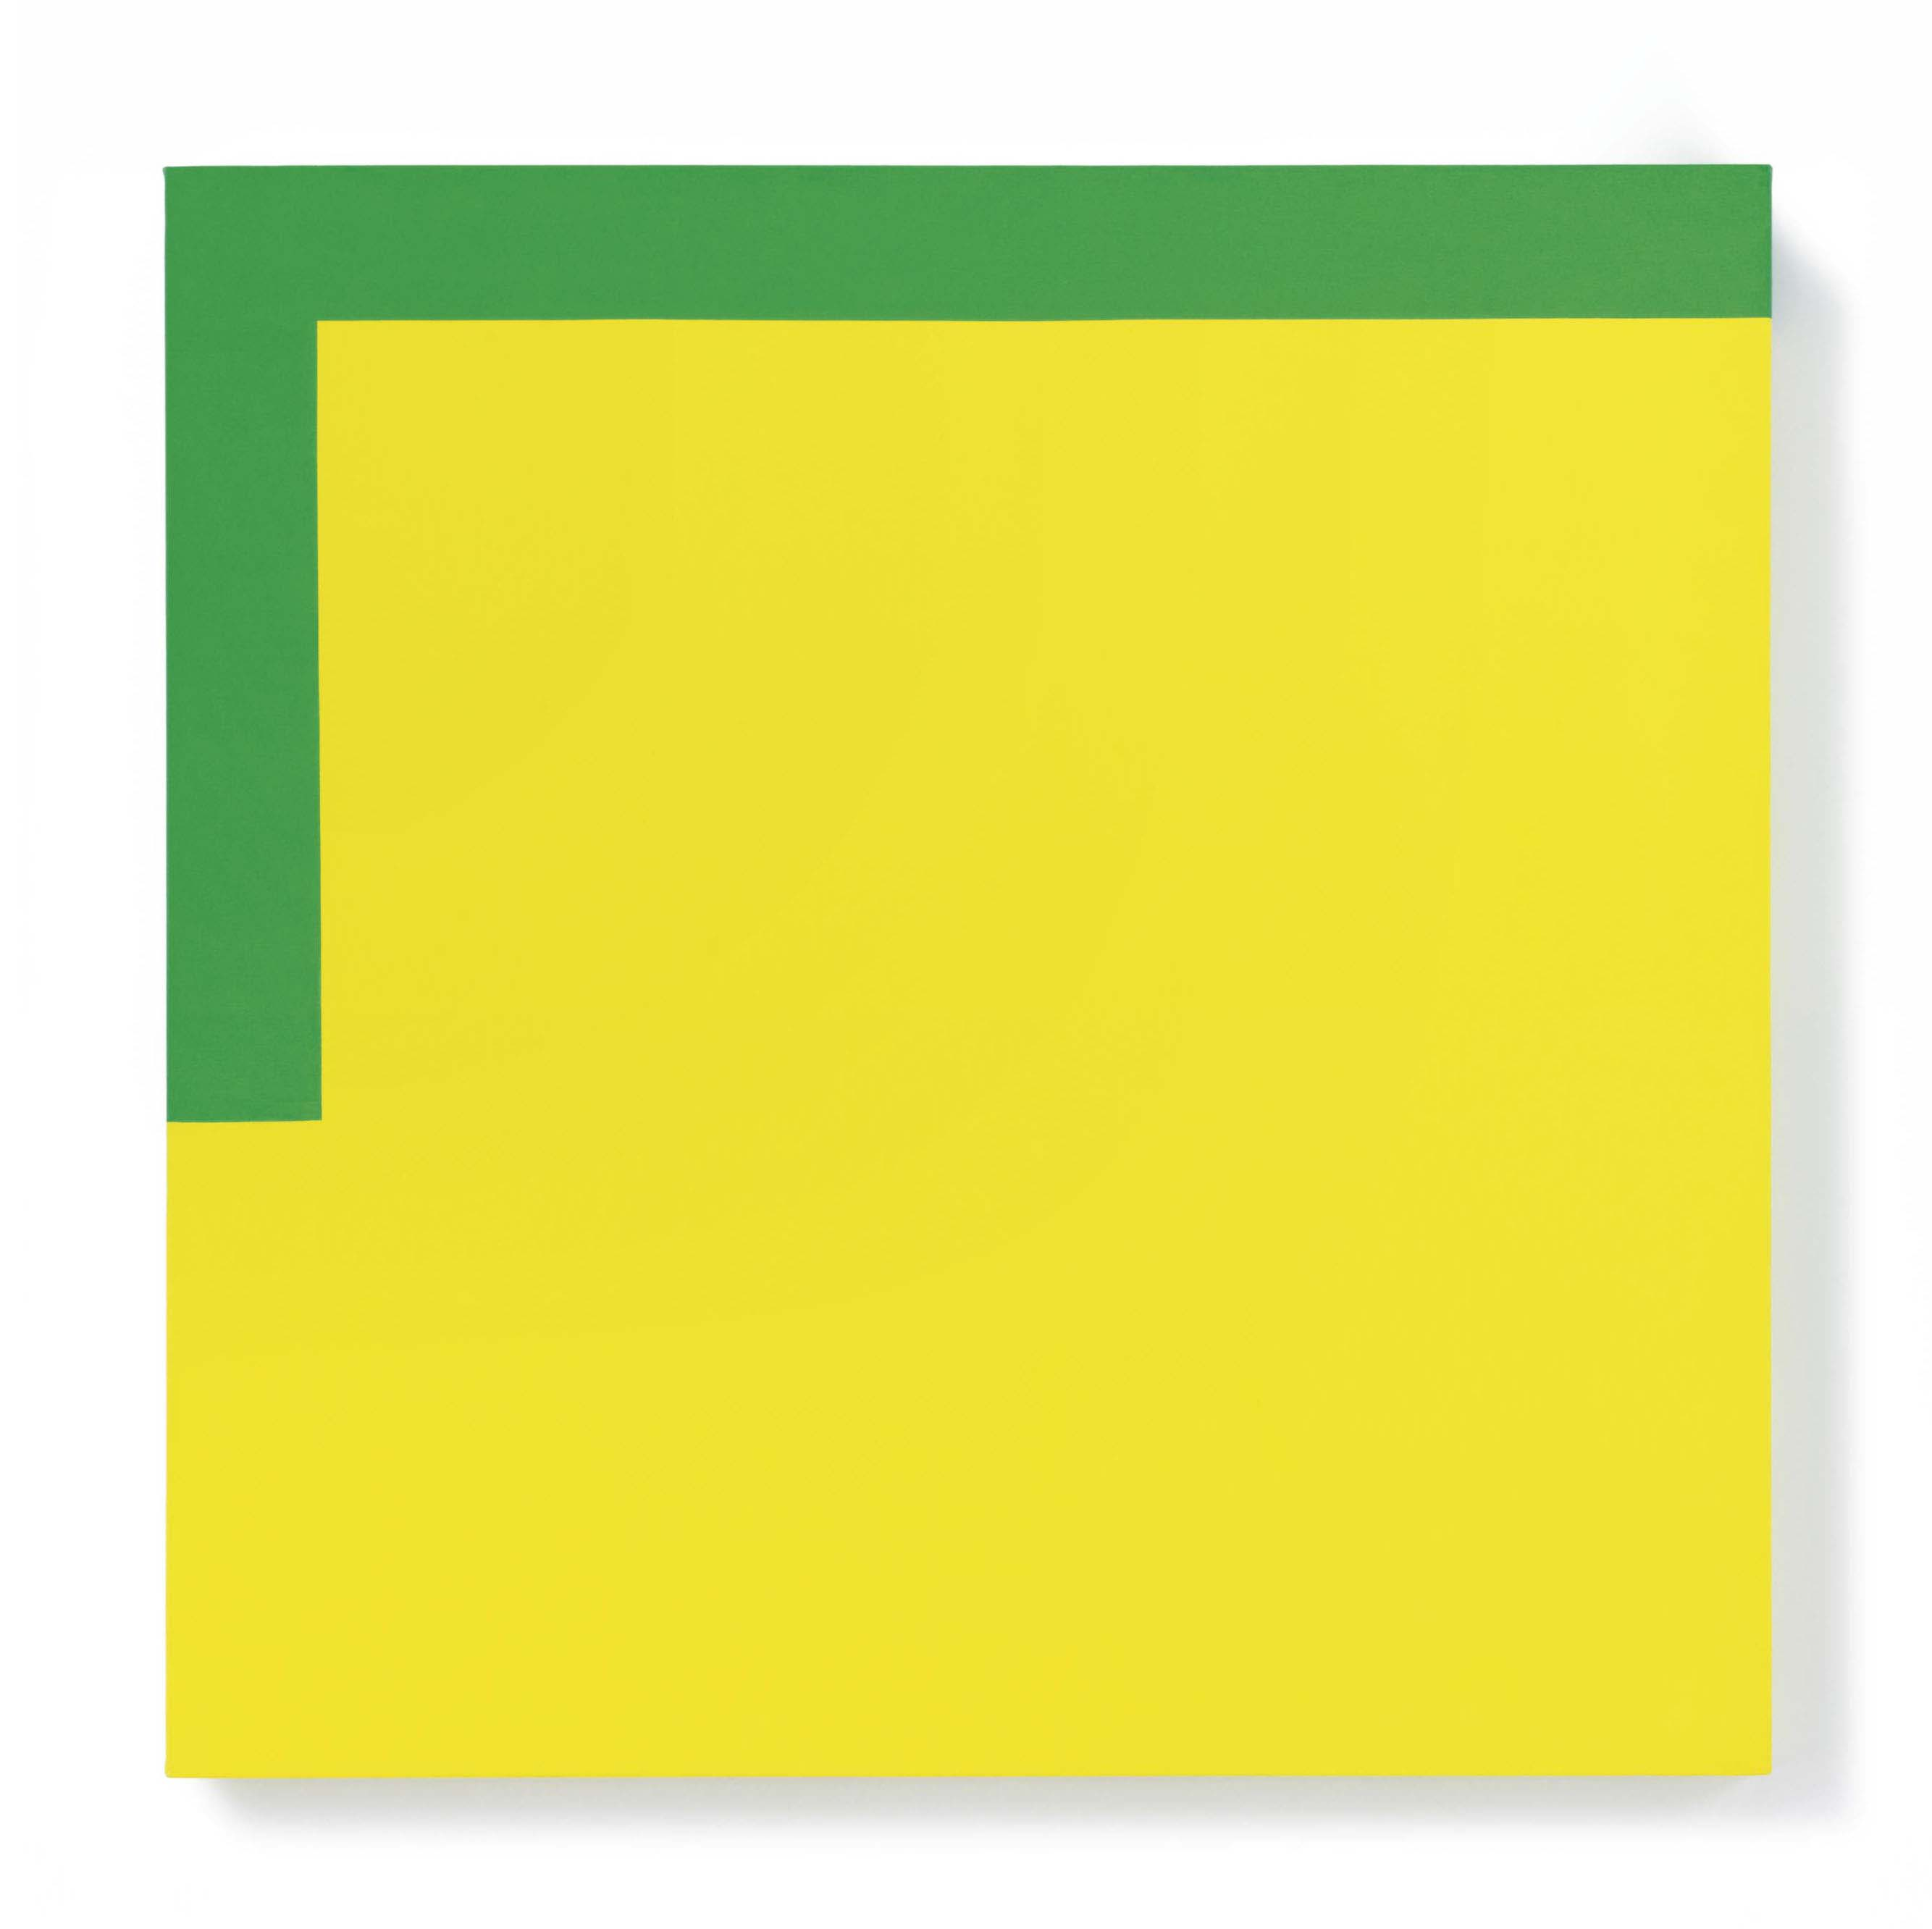 More Yellow, Less Green